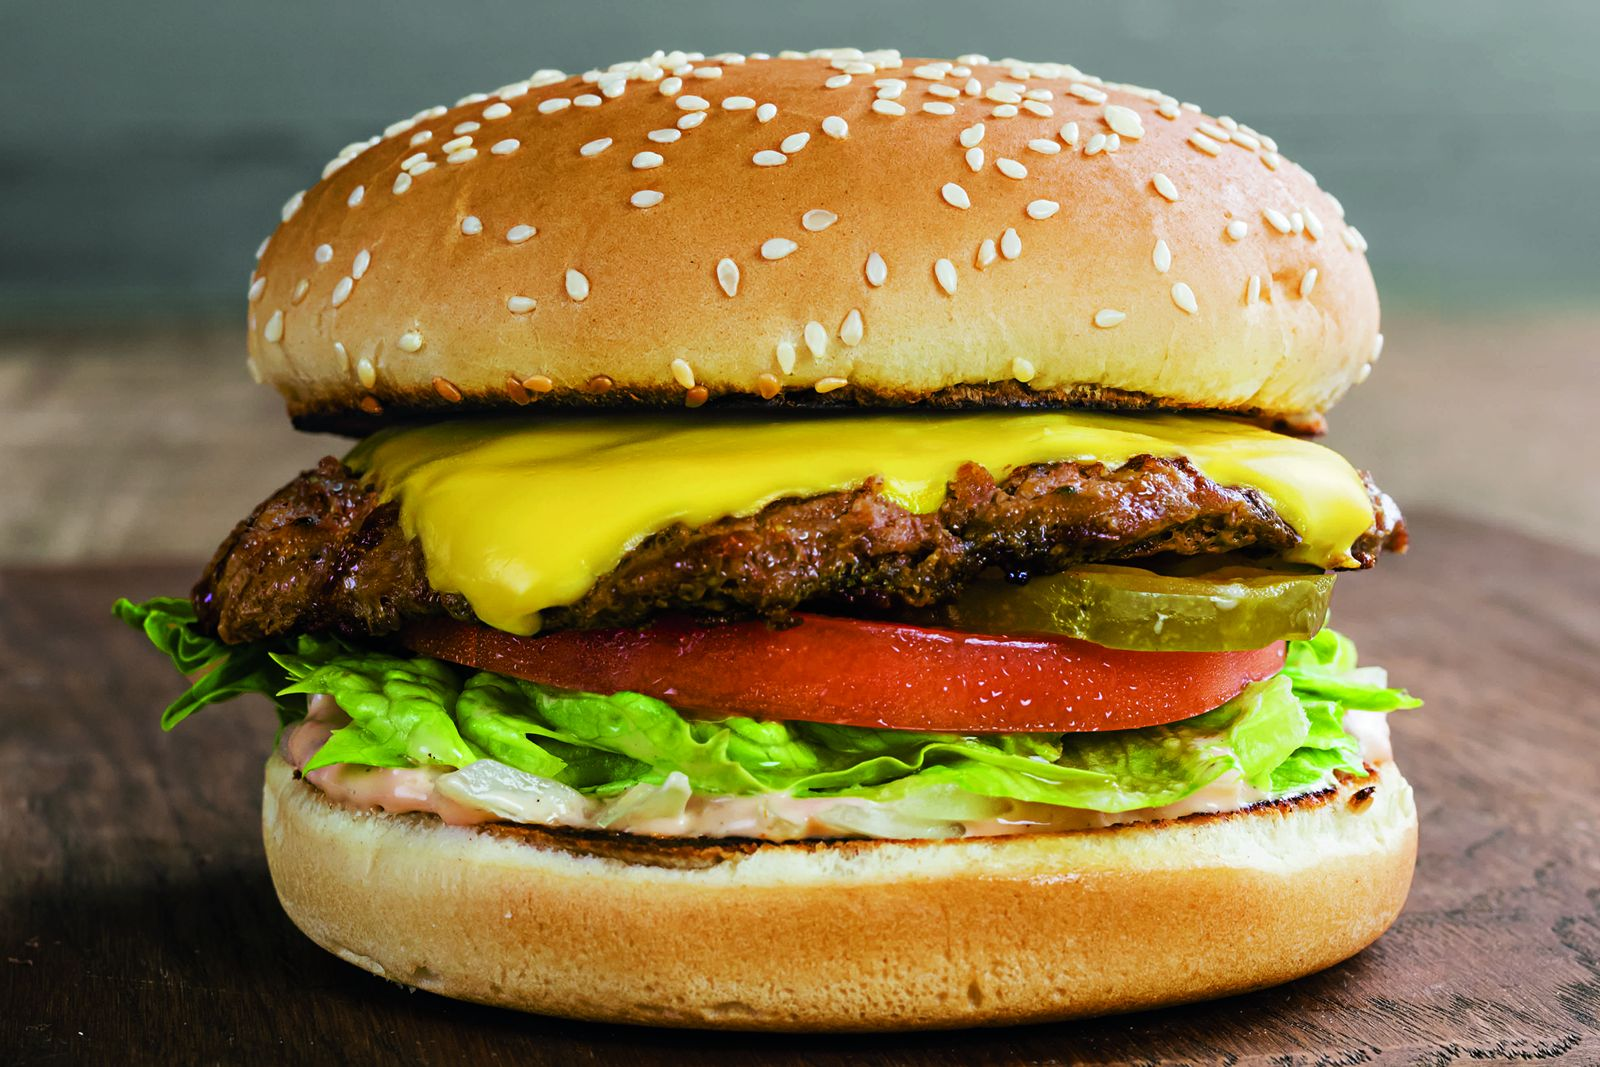 For its 19th year in a row, participating Farmer Boys restaurants in California will be hosting an in-store fundraiser from July 23 through September 2 in support of Loma Linda University Children's Hospital. Guests who donate $1 to the fundraiser will receive $1 off their next visit, and guests who donate $5 will receive a free Big Cheese burger on their next visit.